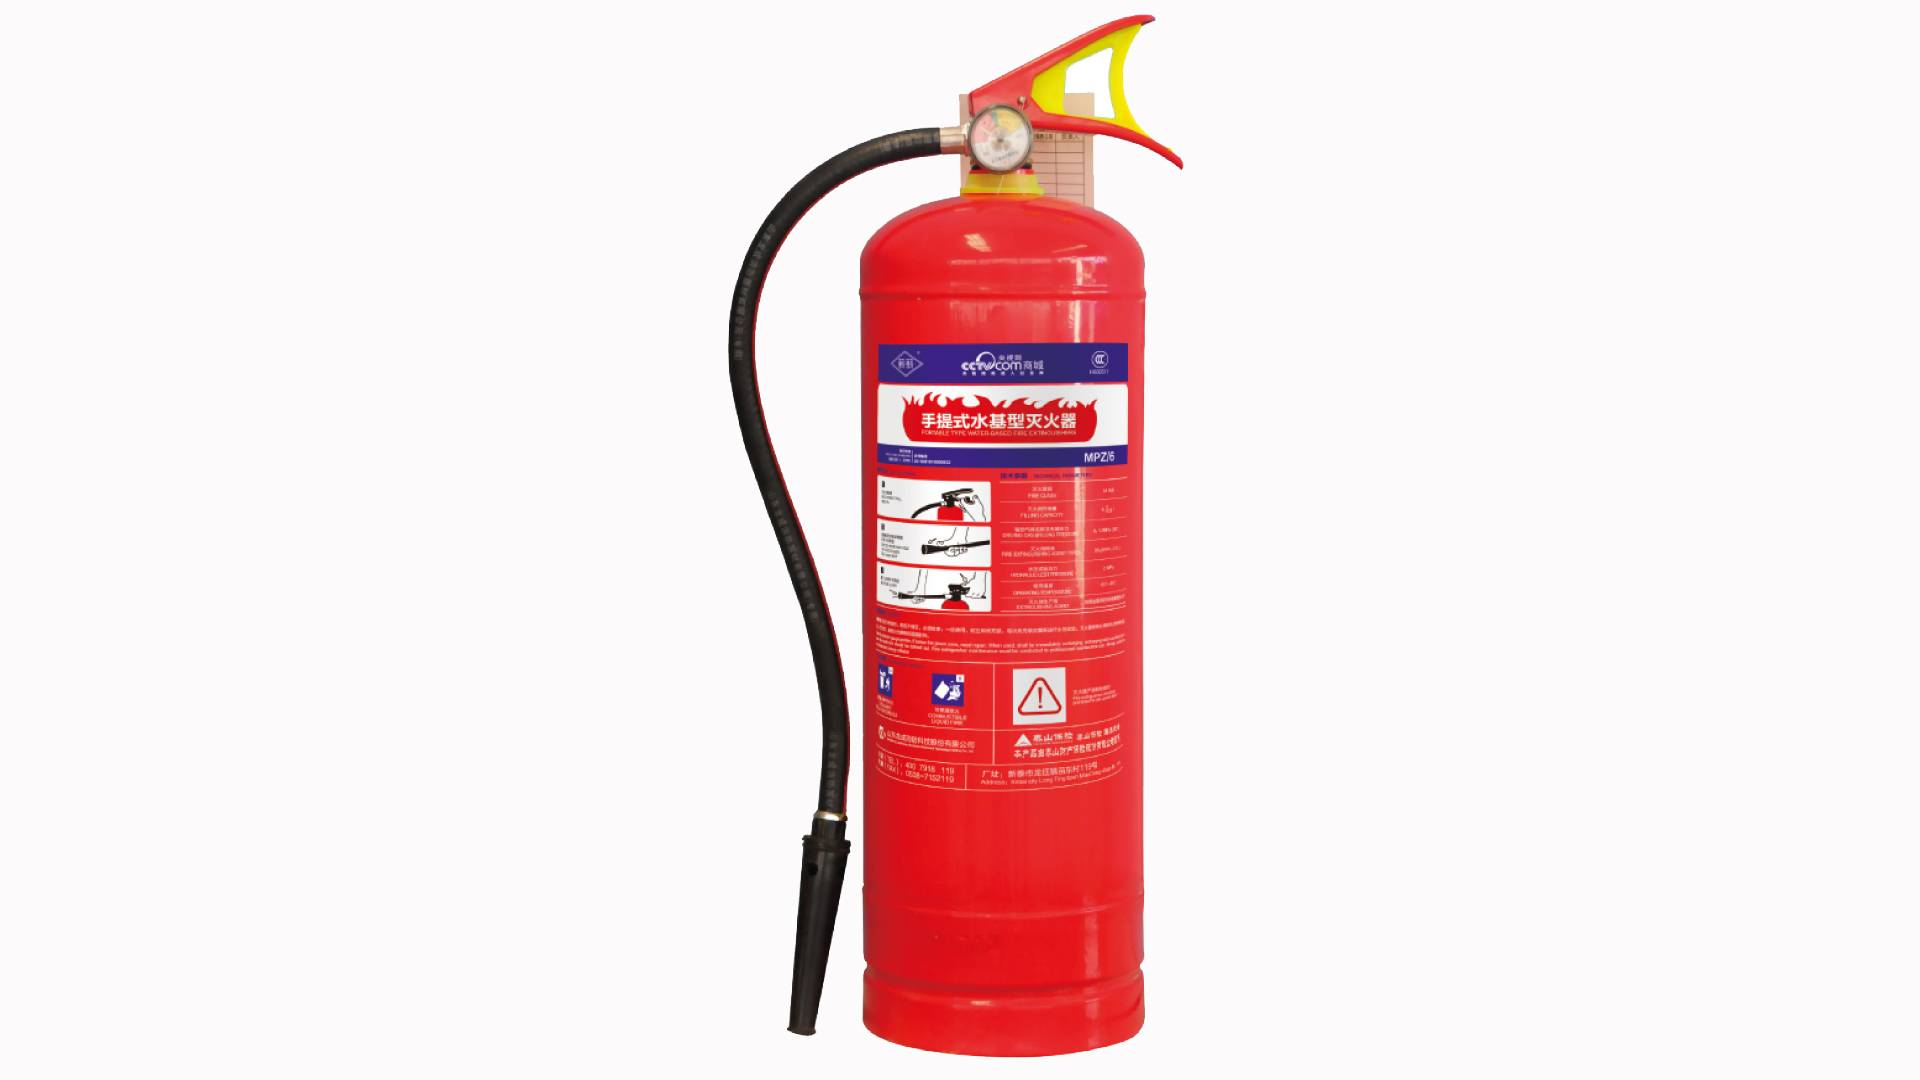 Dry power fire extinguisher ball price in Vietnam